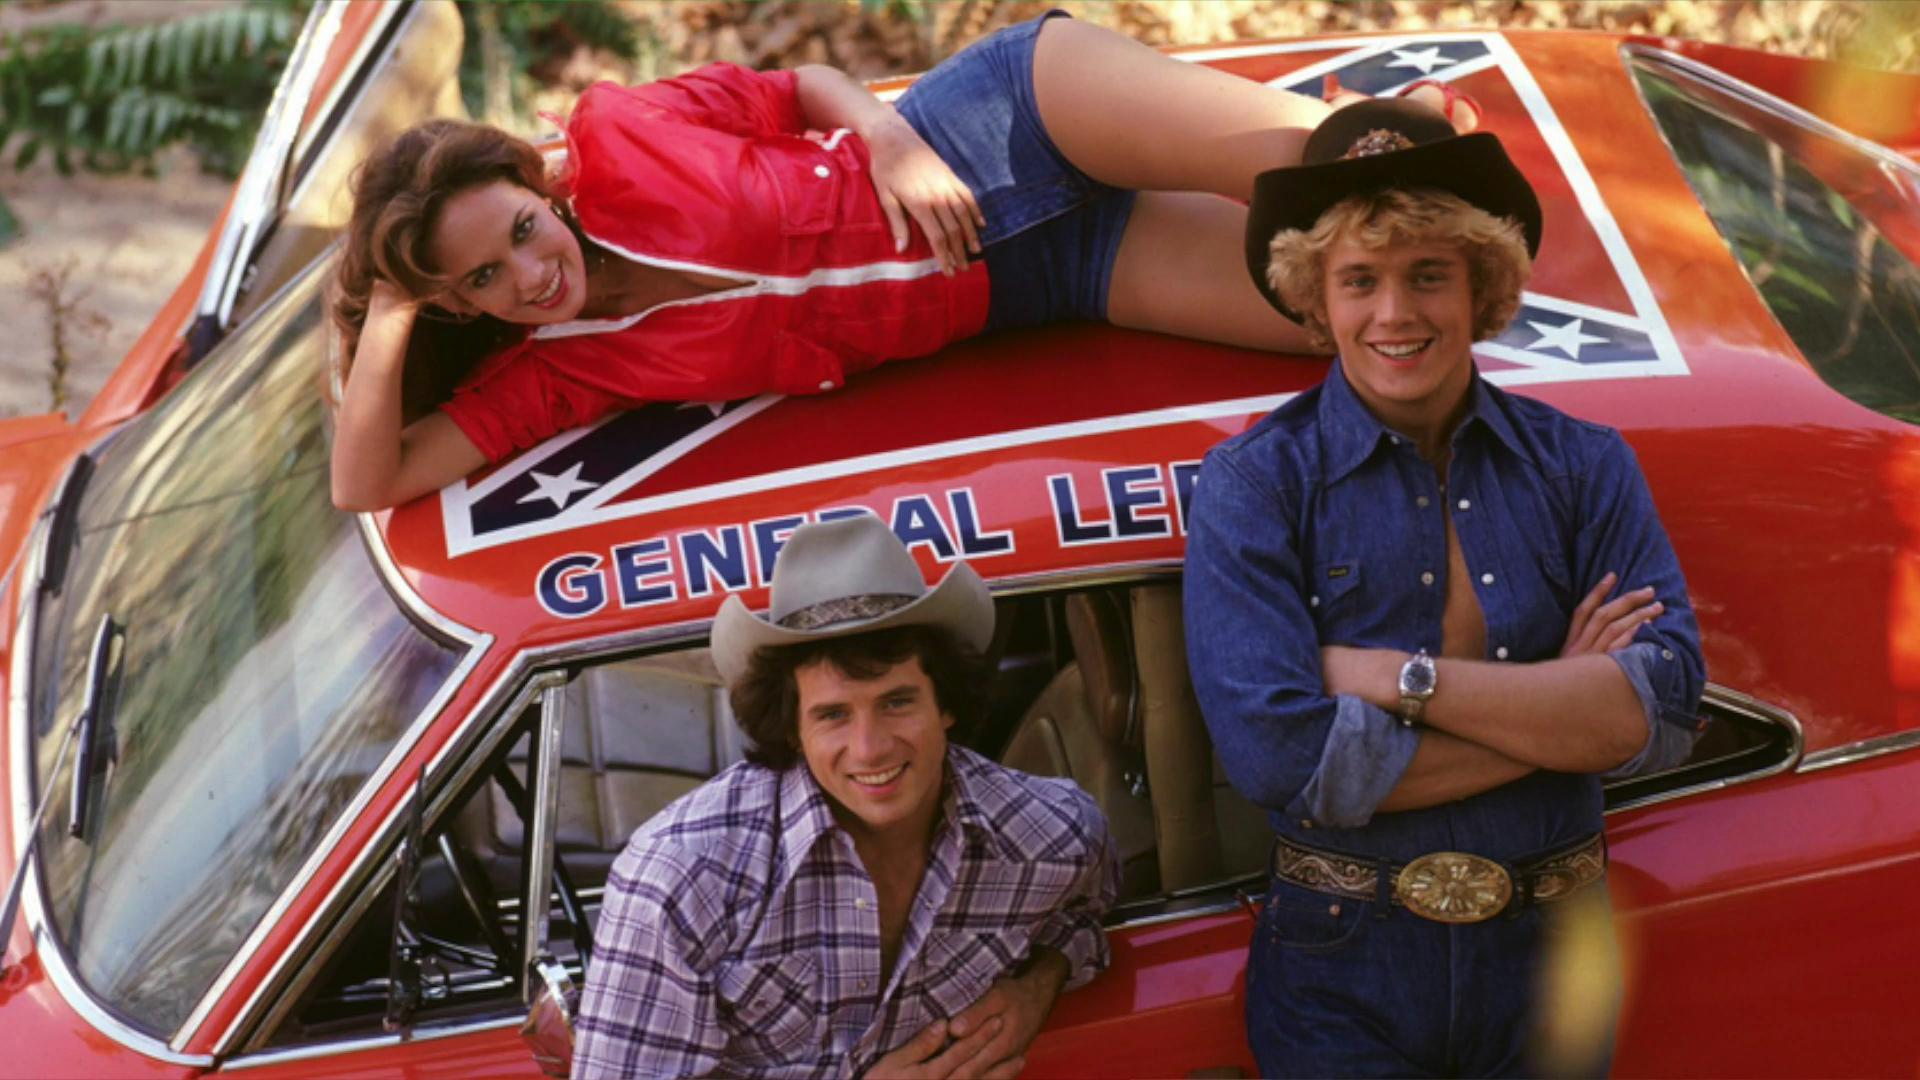 TVLand bans 'The Dukes of Hazzard' re-runs and the reactions aren't so positive